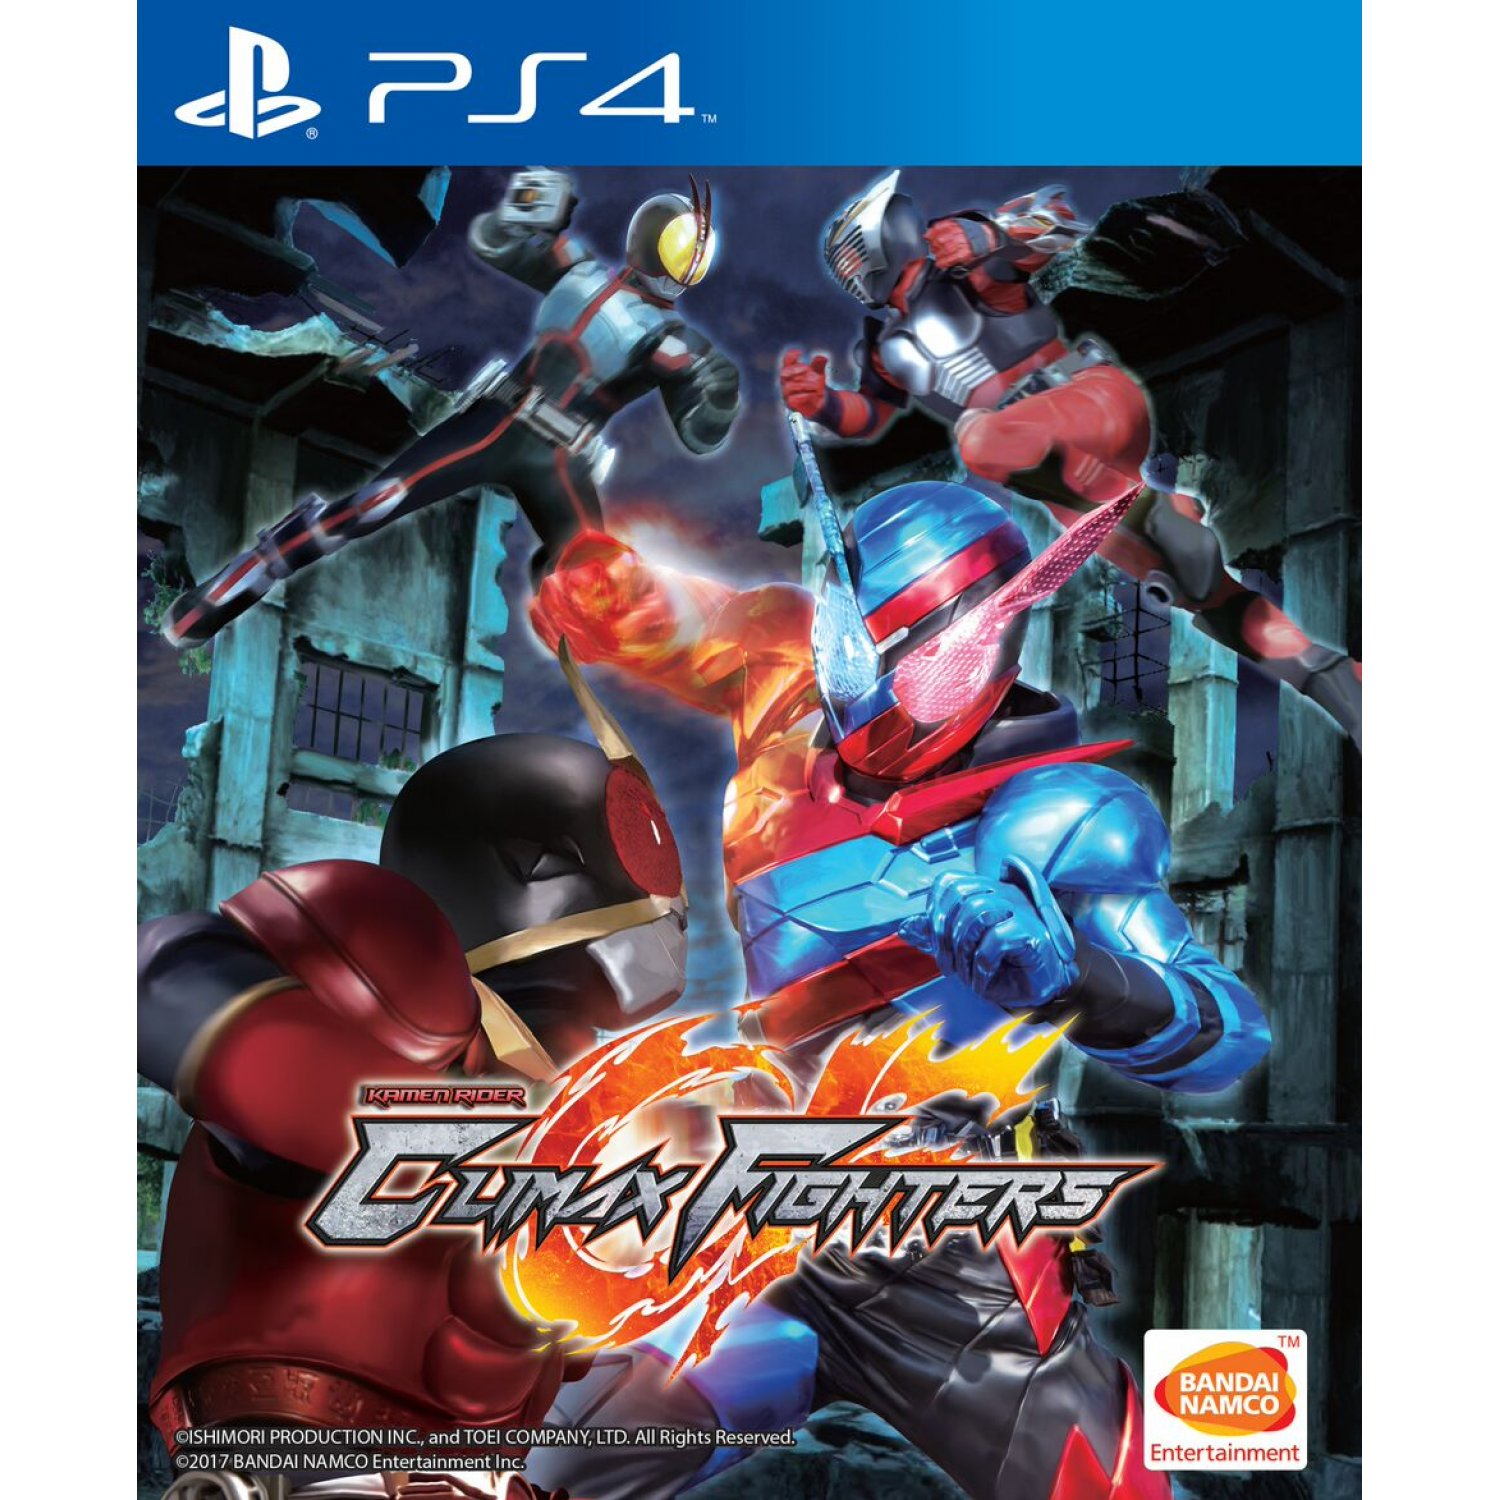 PS4:KAMEN RIDER: CLIMAX FIGHTERS (R3)